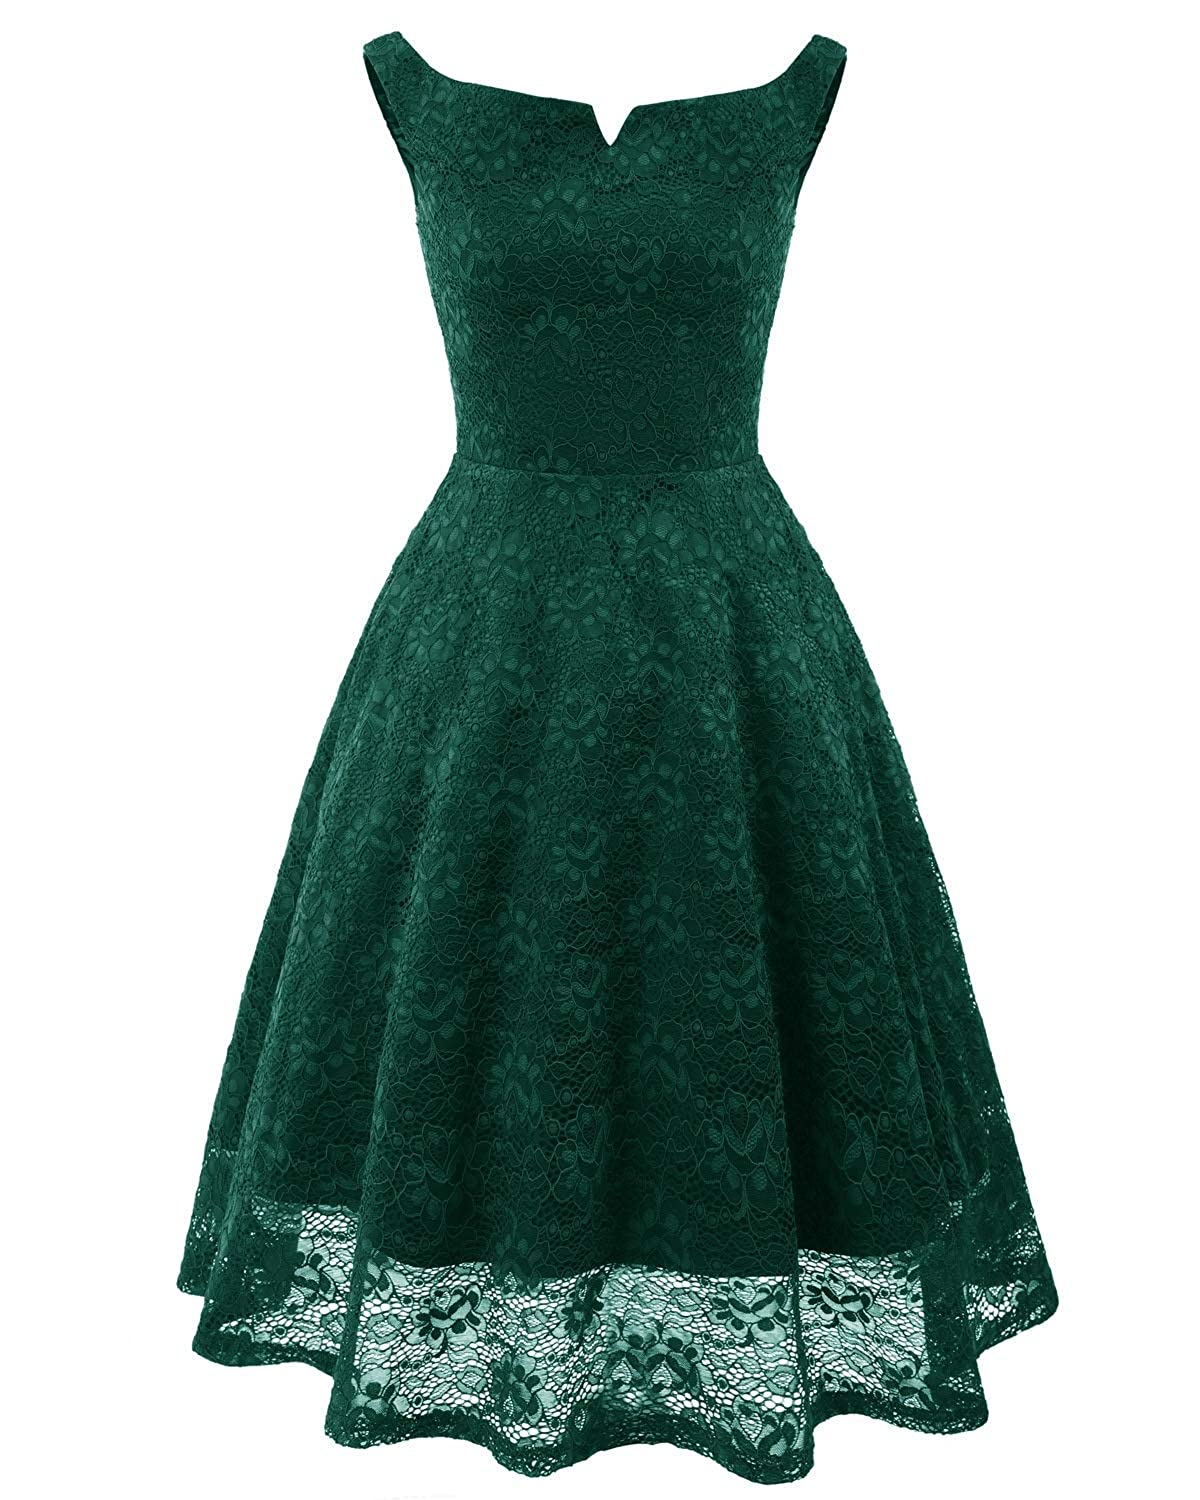 Green Zooka Vintage Floral Lace Off Shoulder Dress Women High Low Hem Midi Party Robe Dress